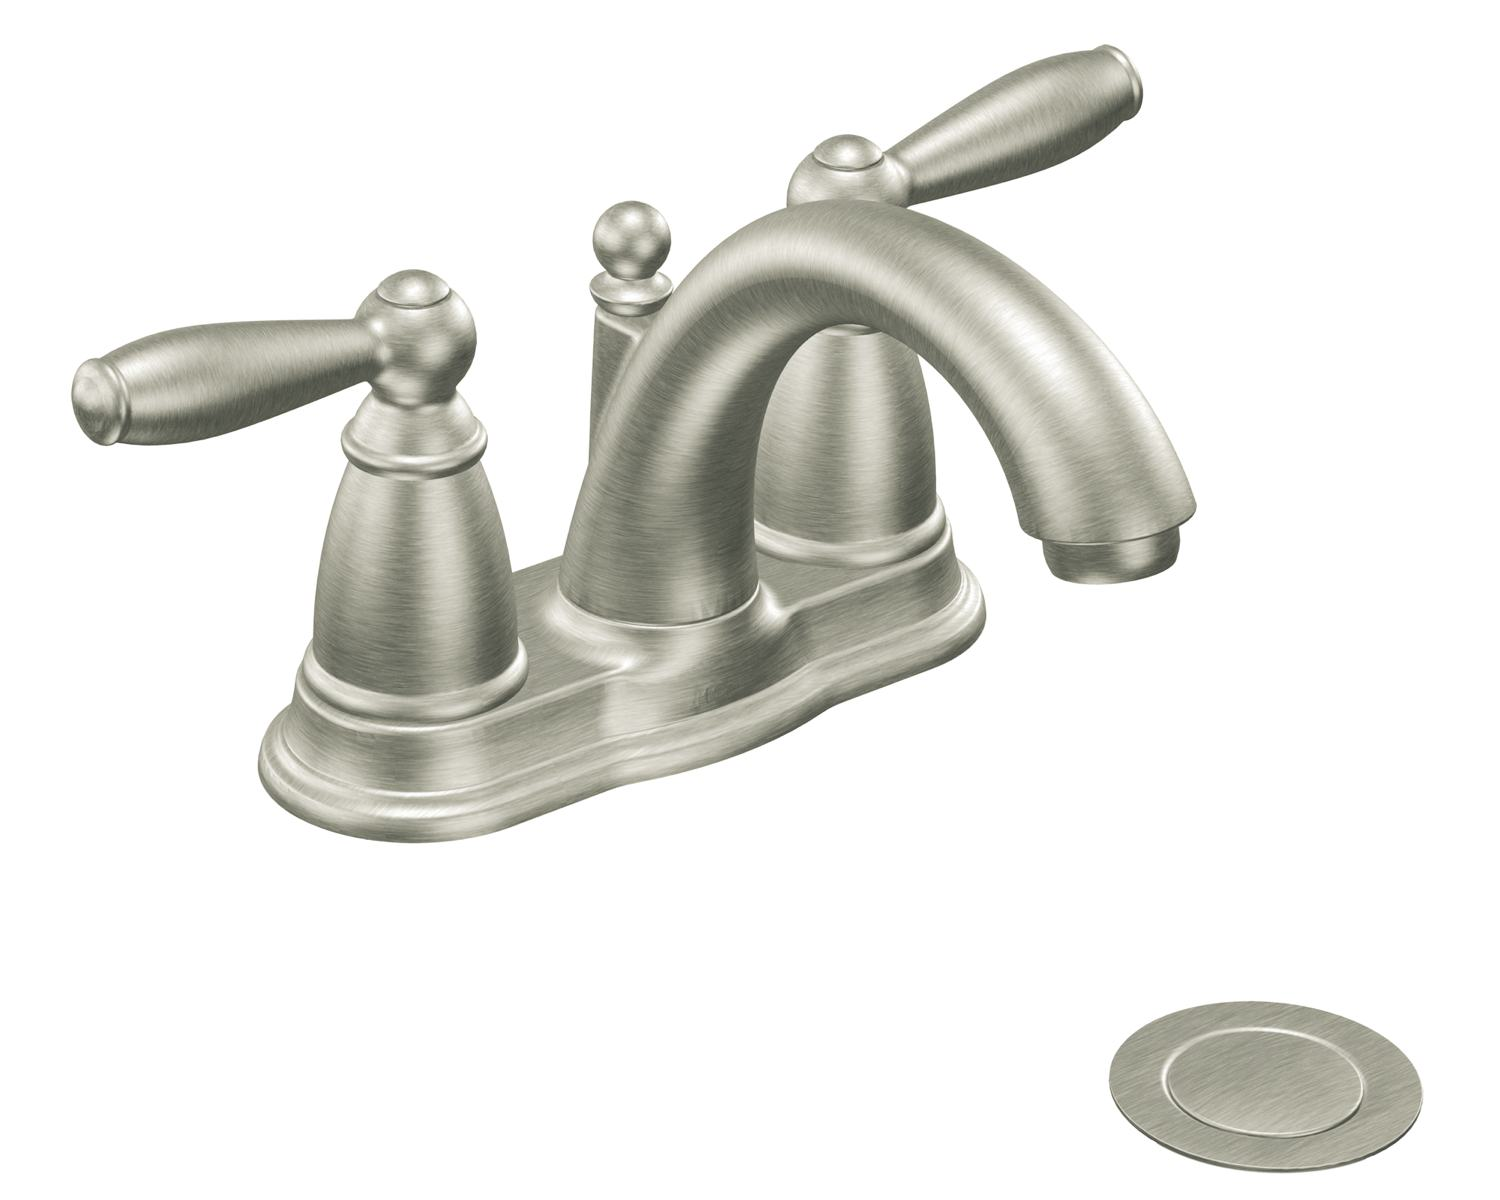 Moen 6610bn brantford two handle low arc bathroom faucet for Pictures of bathroom faucets